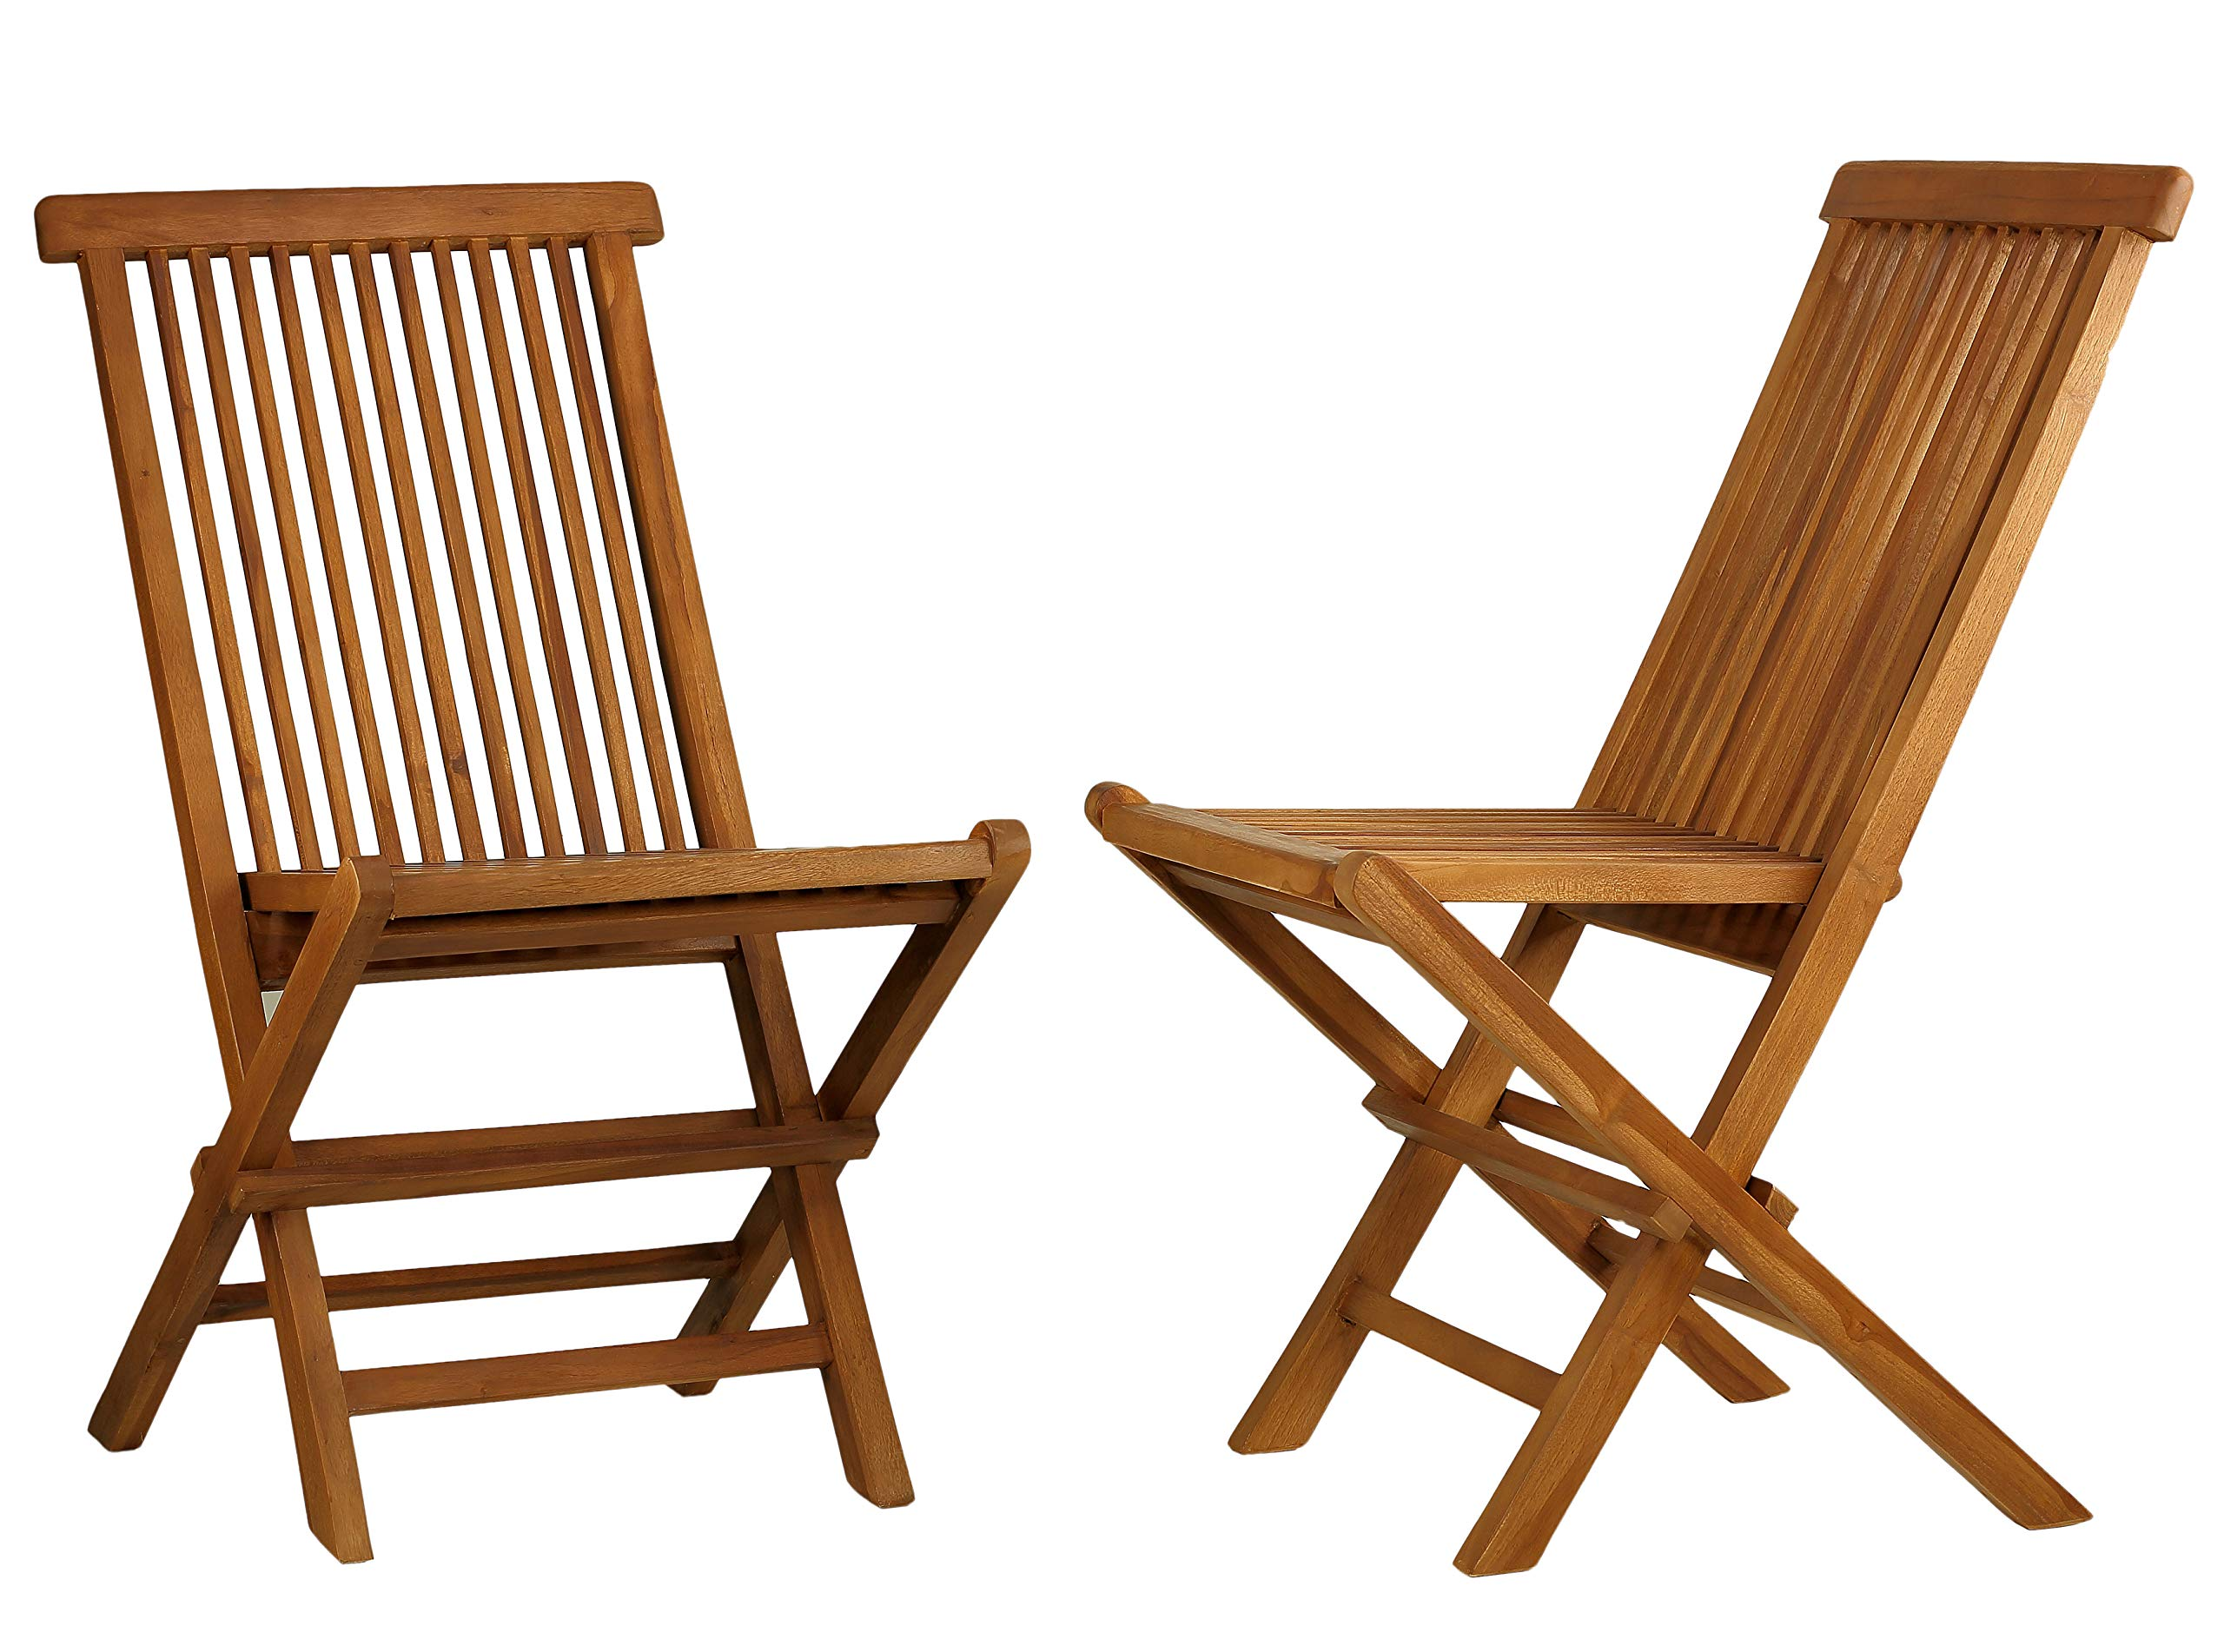 Bare Decor BARE-DC1021 Vega Outdoor Folding Chair, Set of 2, Teak by Bare Decor